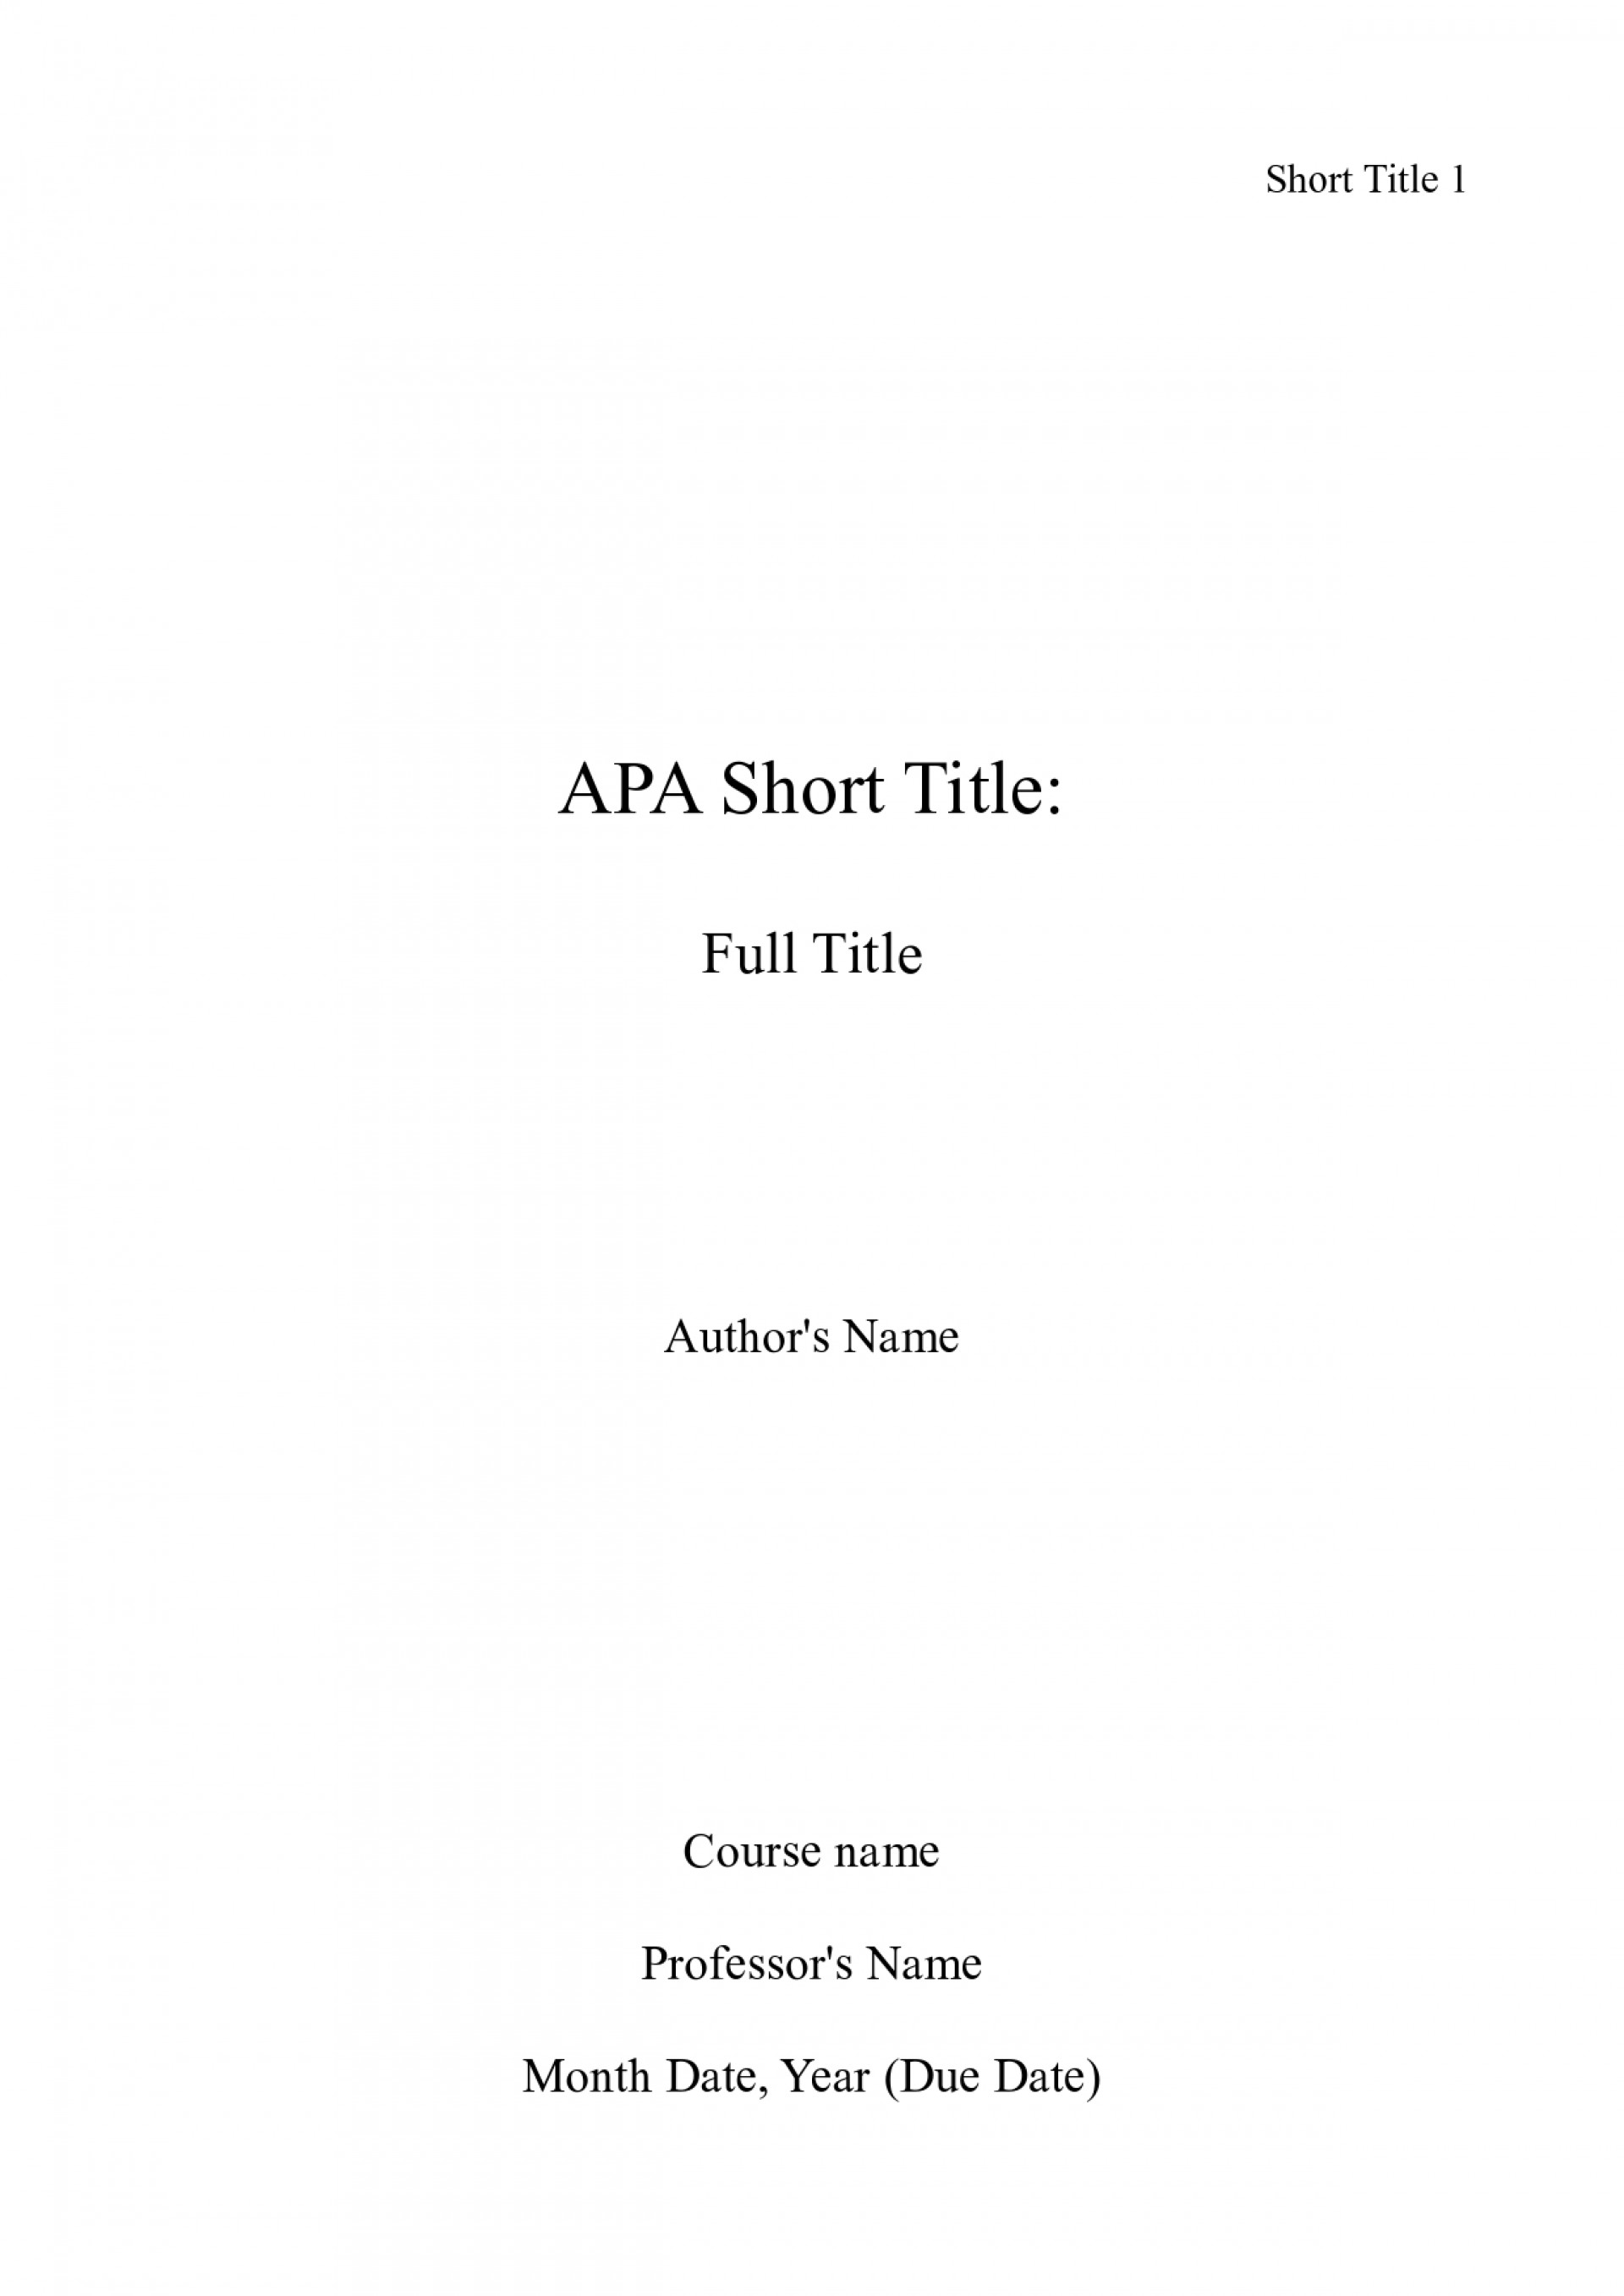 003 Front Page Of Term Paper Example Research Apa Title Unforgettable Sample 1920